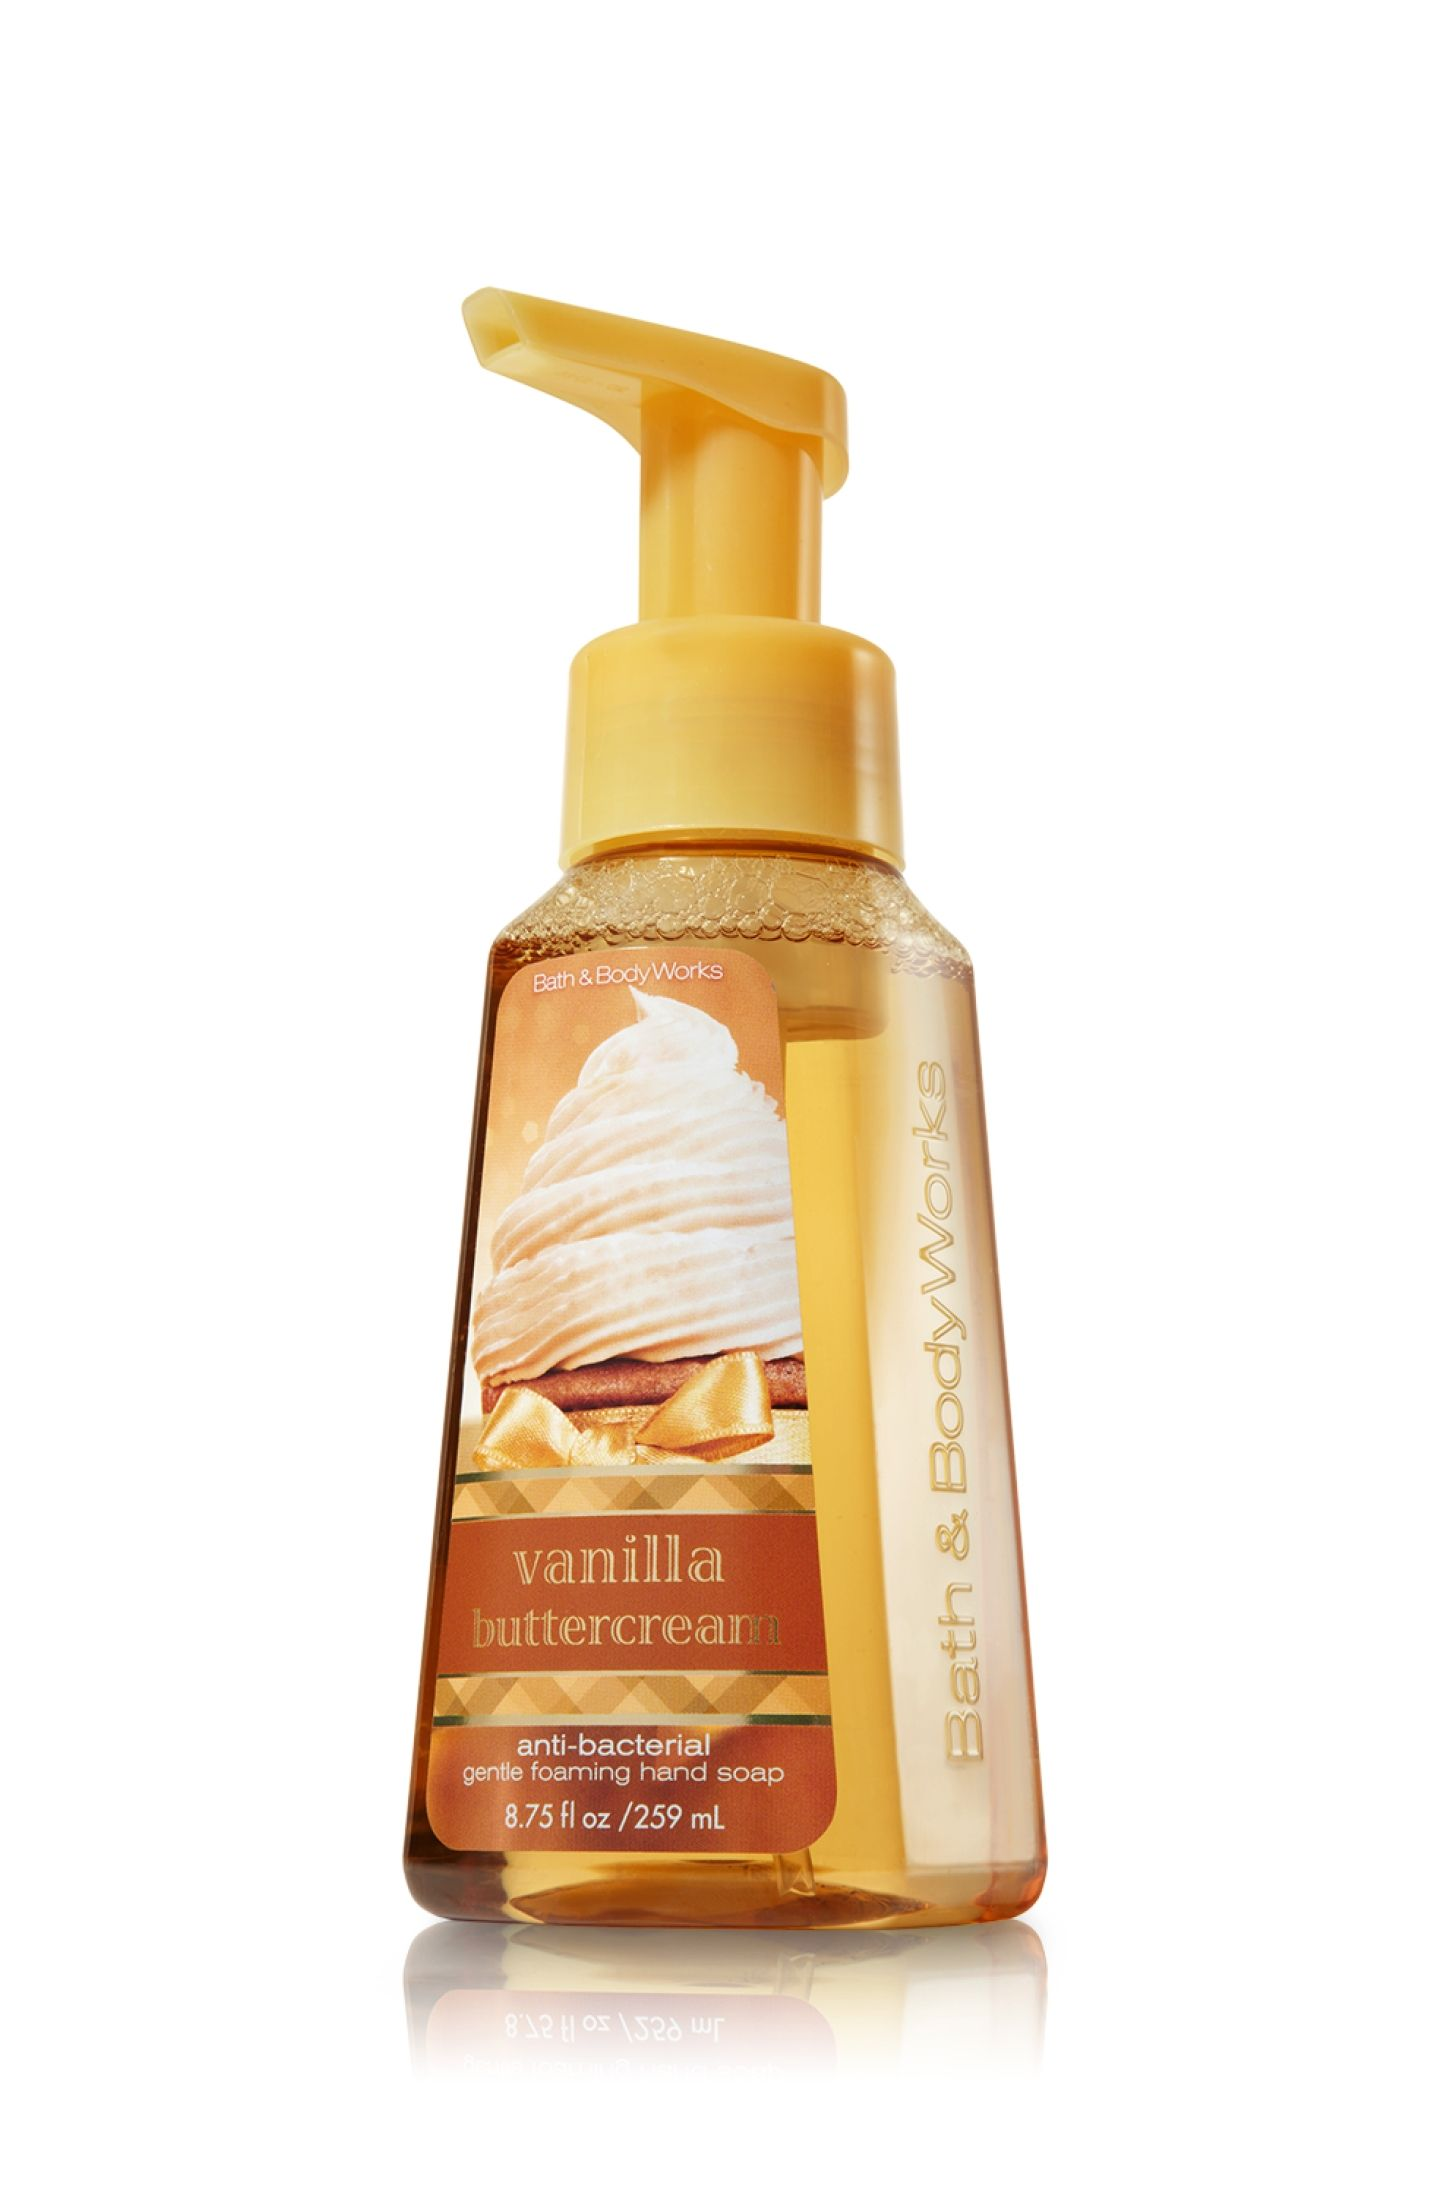 Vanilla Buttercream Gentle Foaming Hand Soap Anti Bacterial